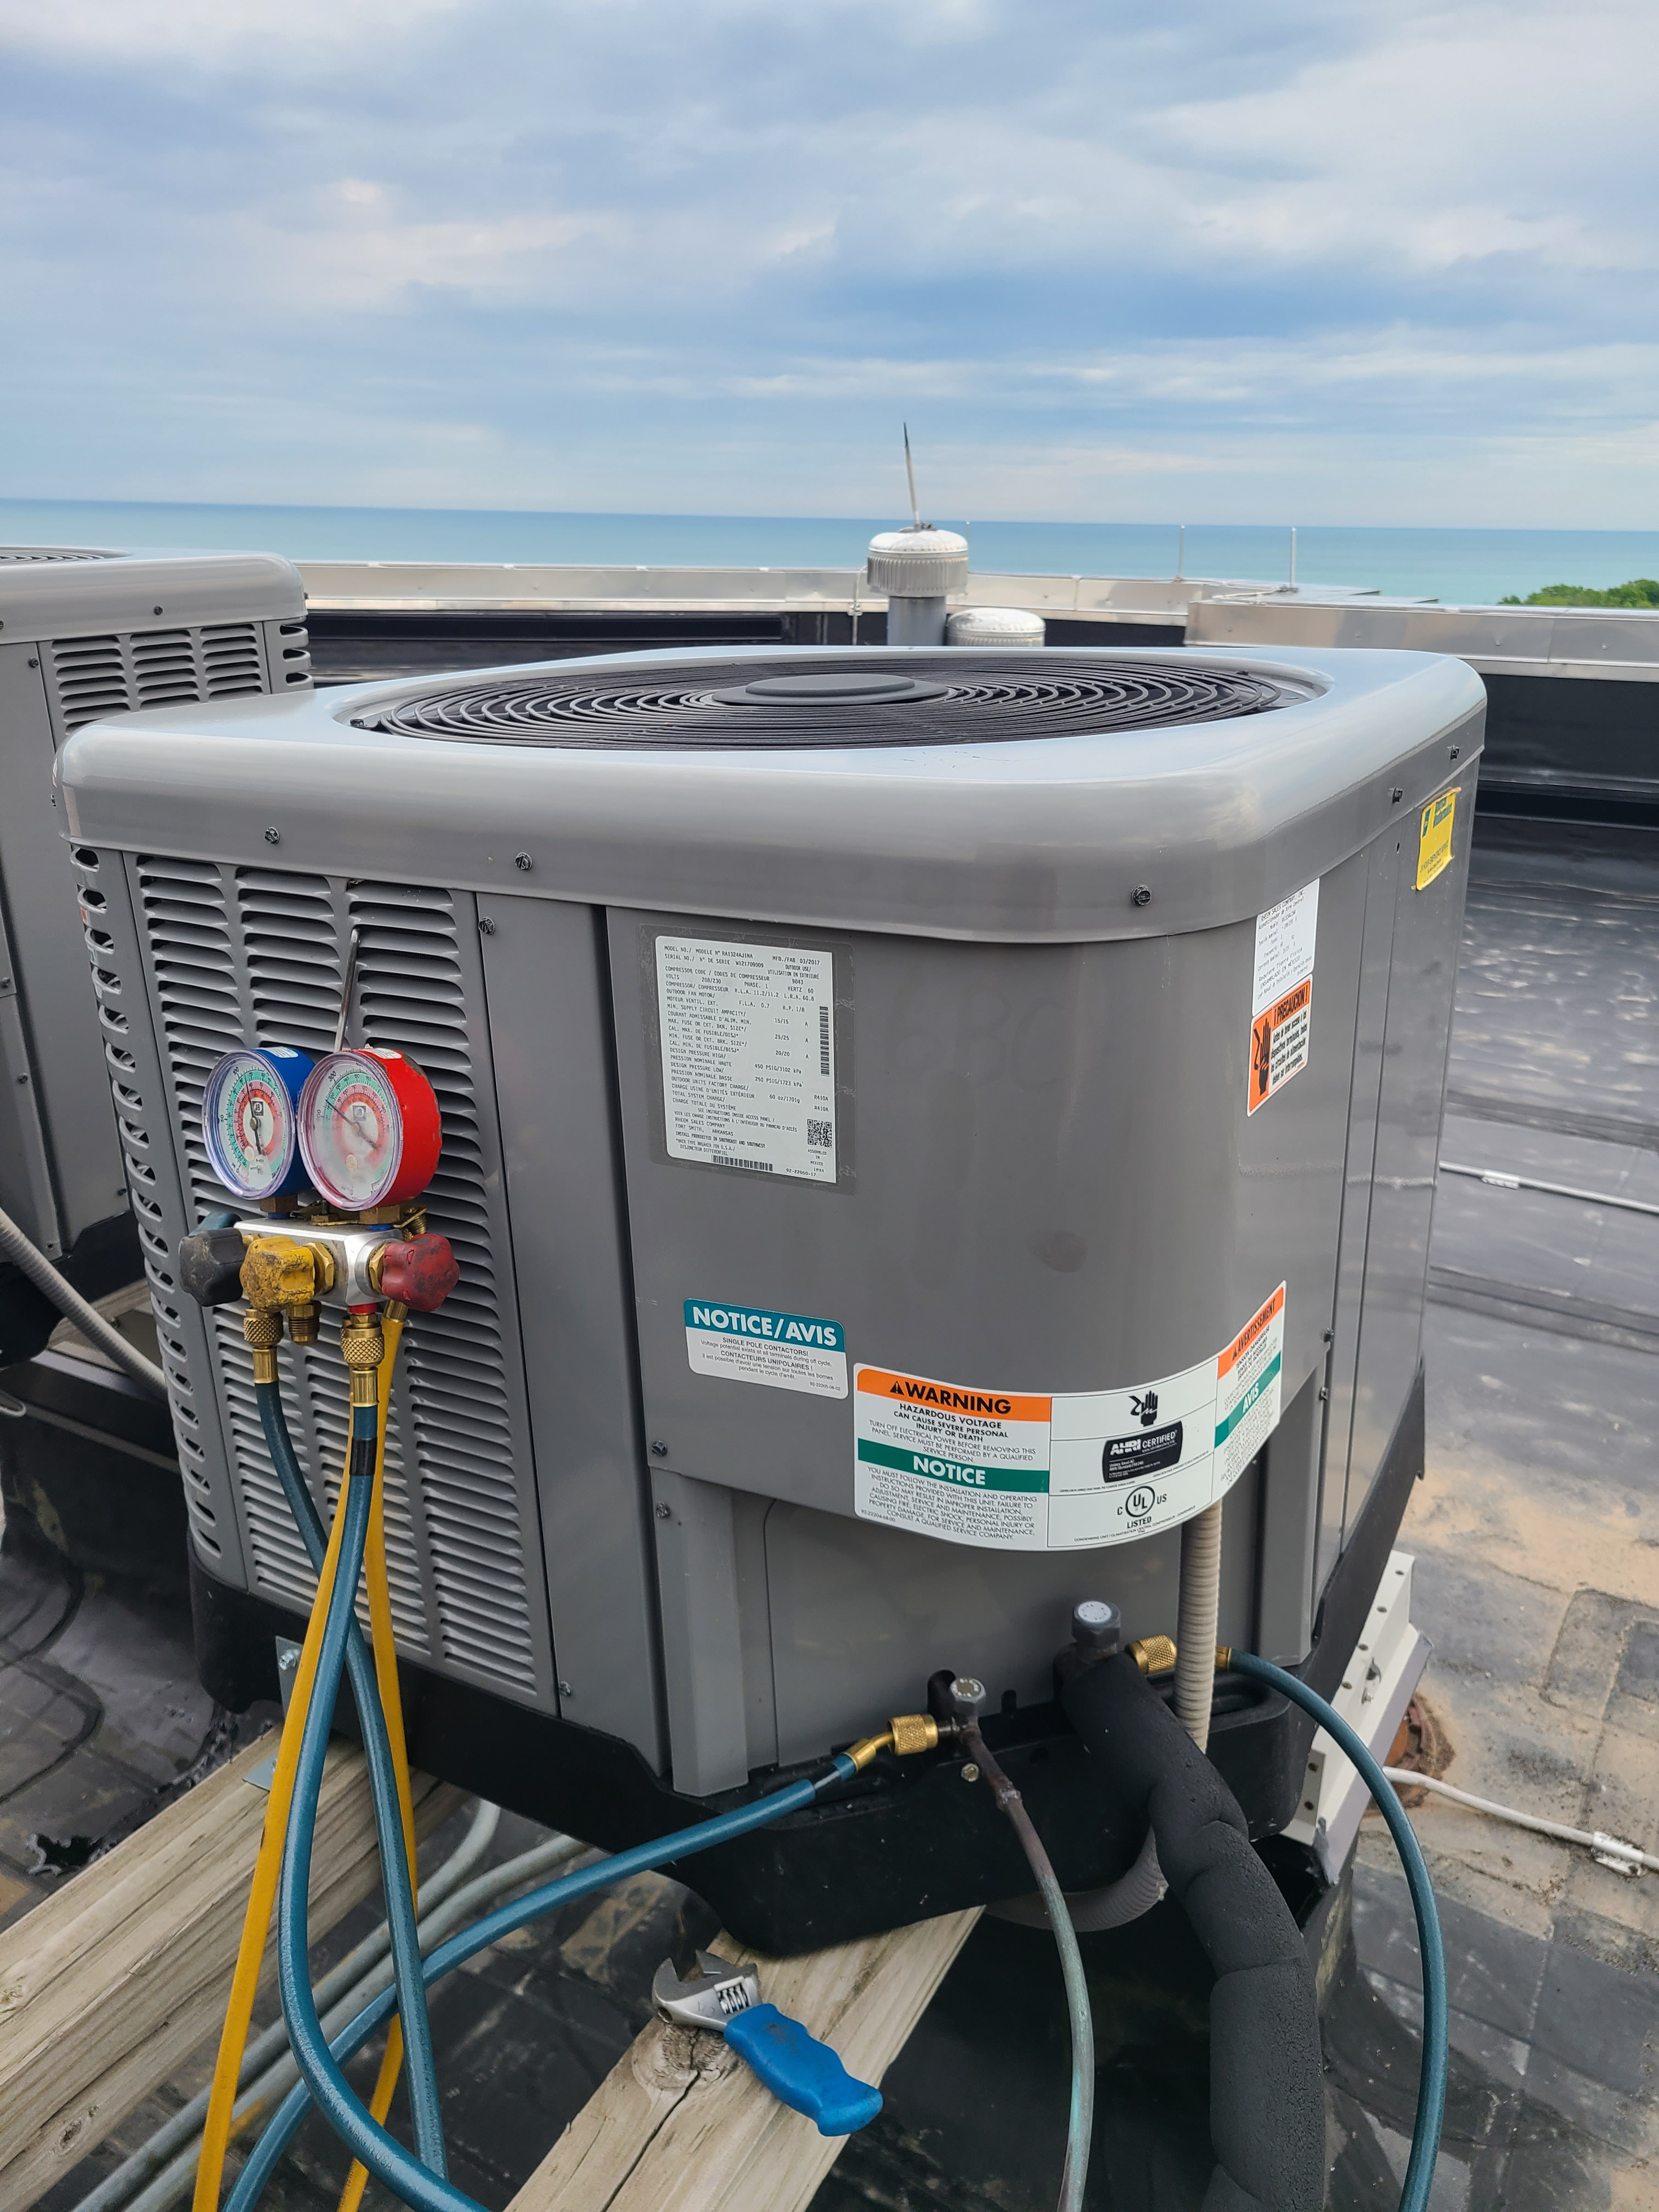 Ruud summer ac clean and check. System tuned up and ready for summer.